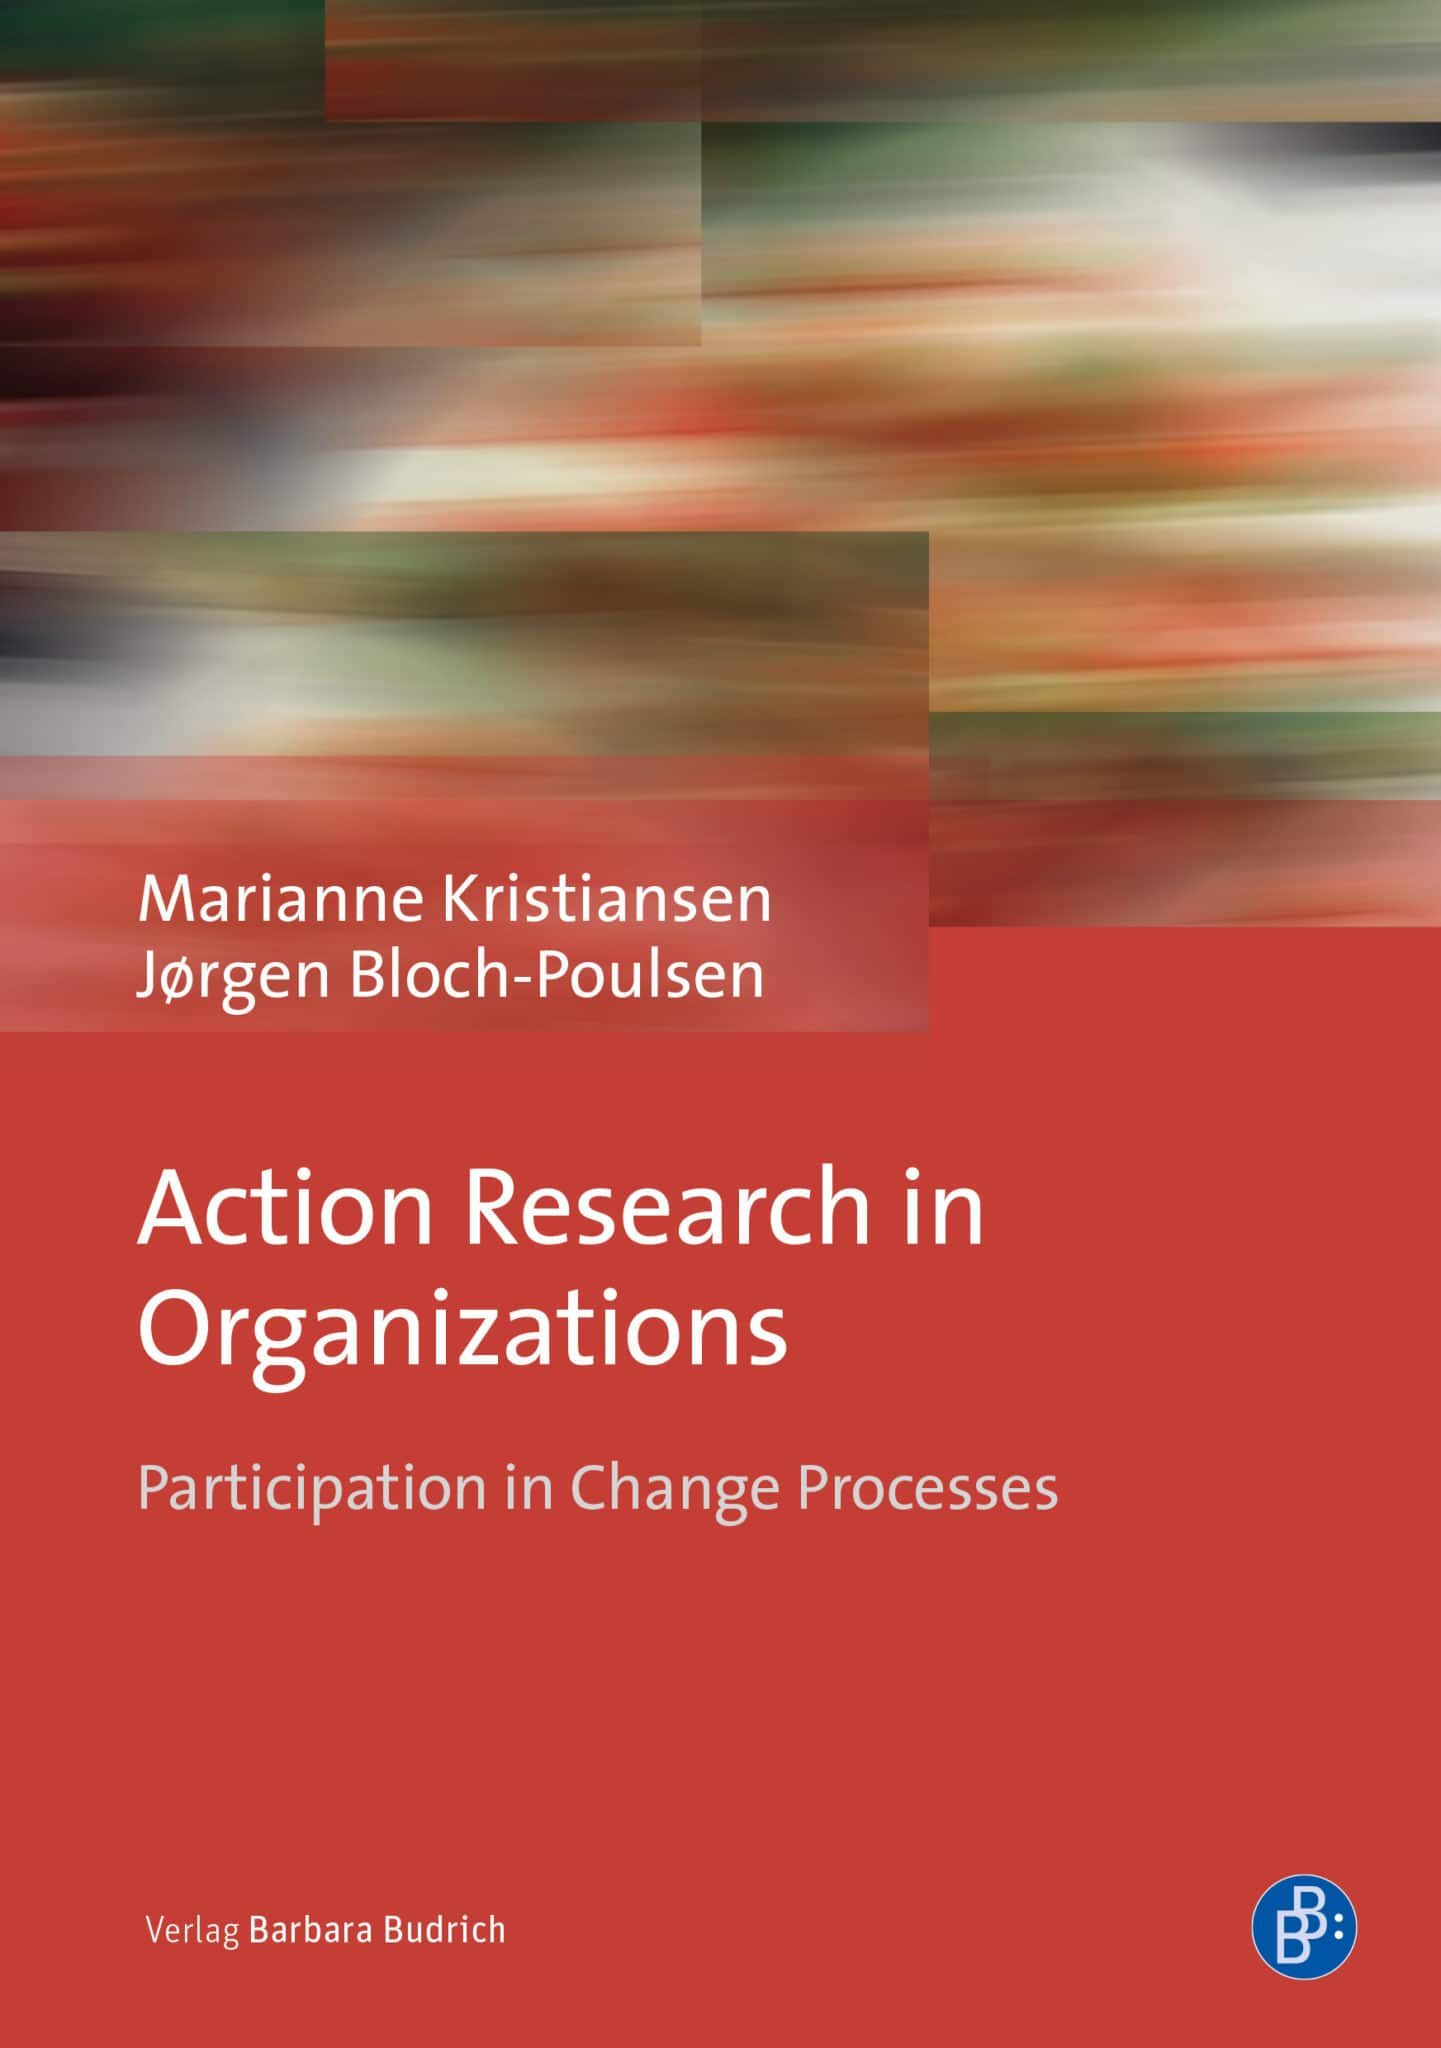 Kristiansen/Bloch-Poulsen: Action Research in Organizations. Participation in Change Processes. Verlag Barbara Budrich. 14.12.2020